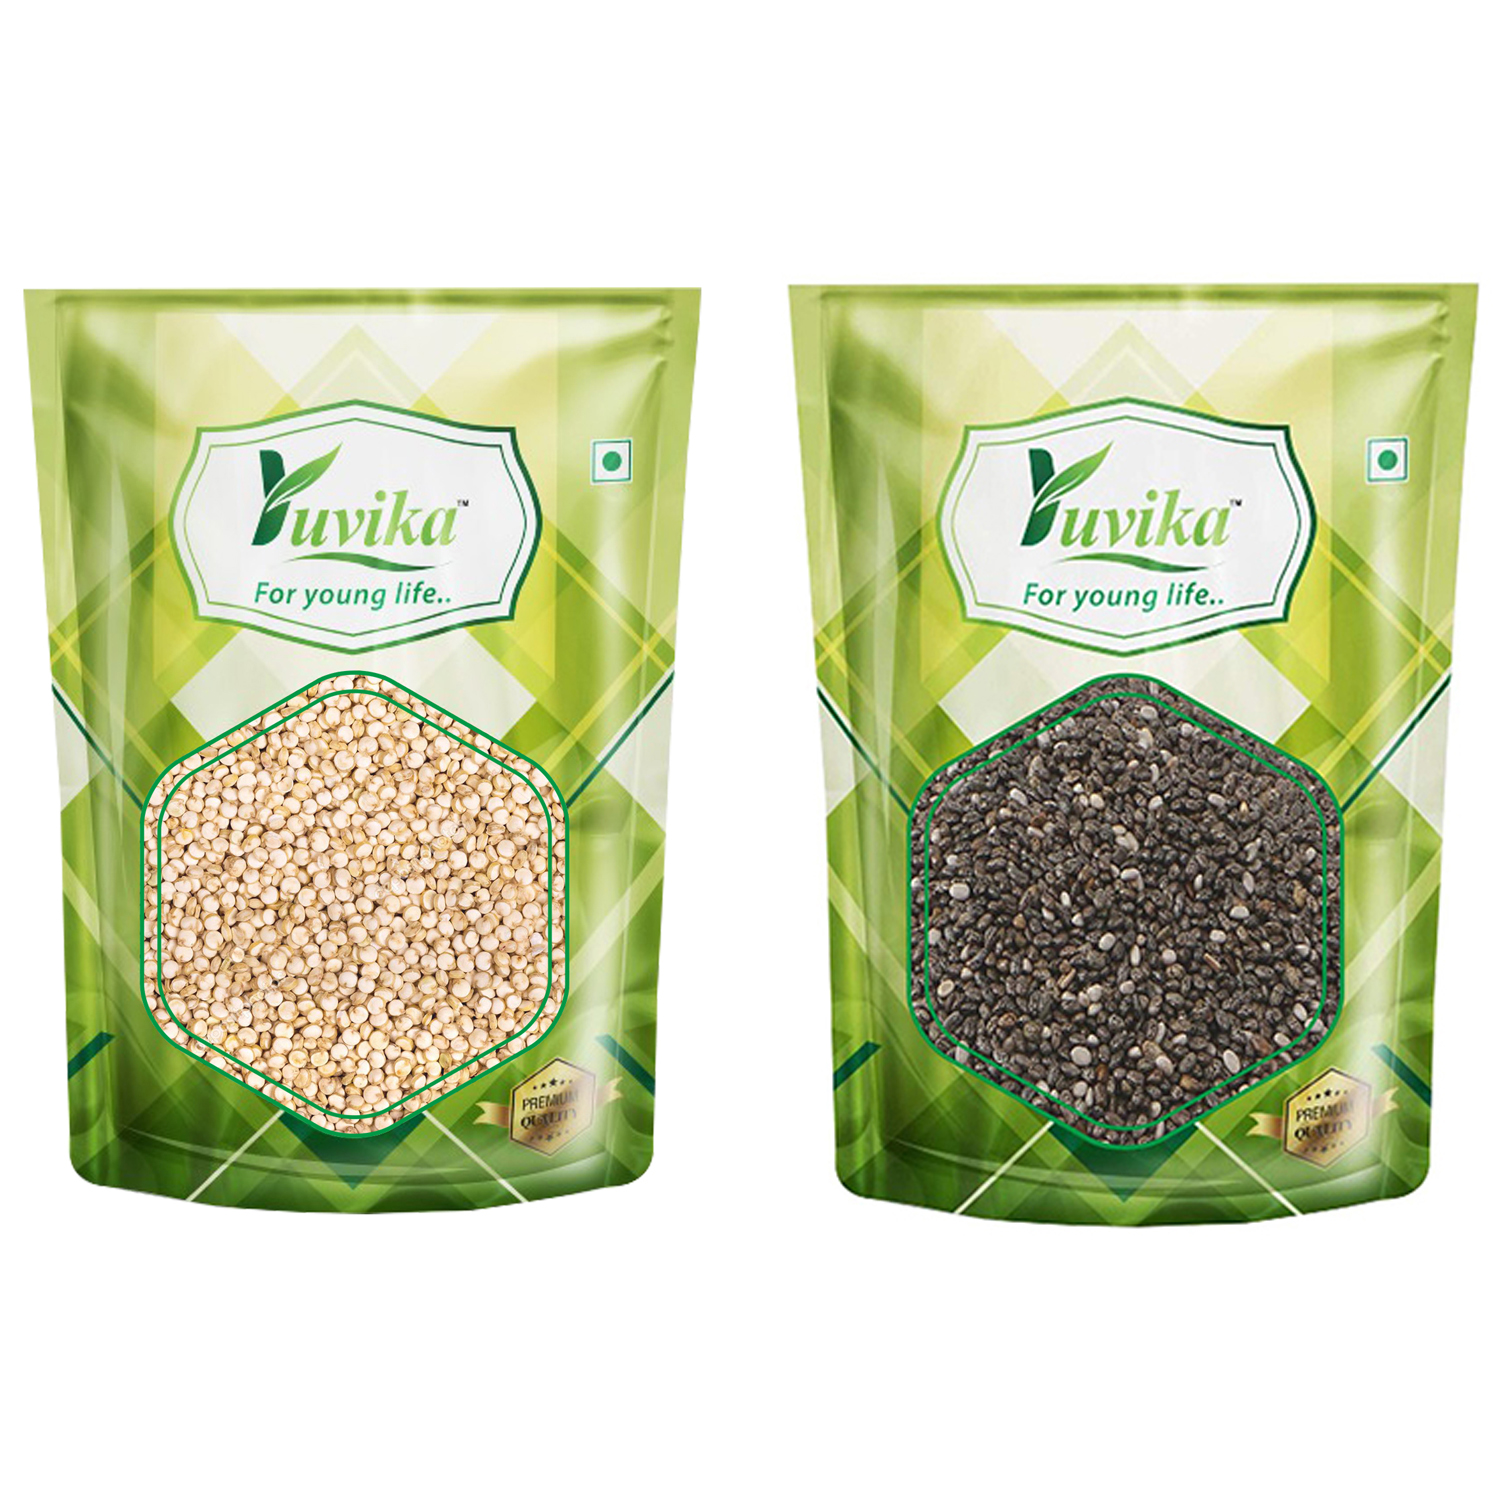 YUVIKA Superfood Combo of Quinoa Seeds & Chia Seeds, 2 x 500 Grams 1000 Grams